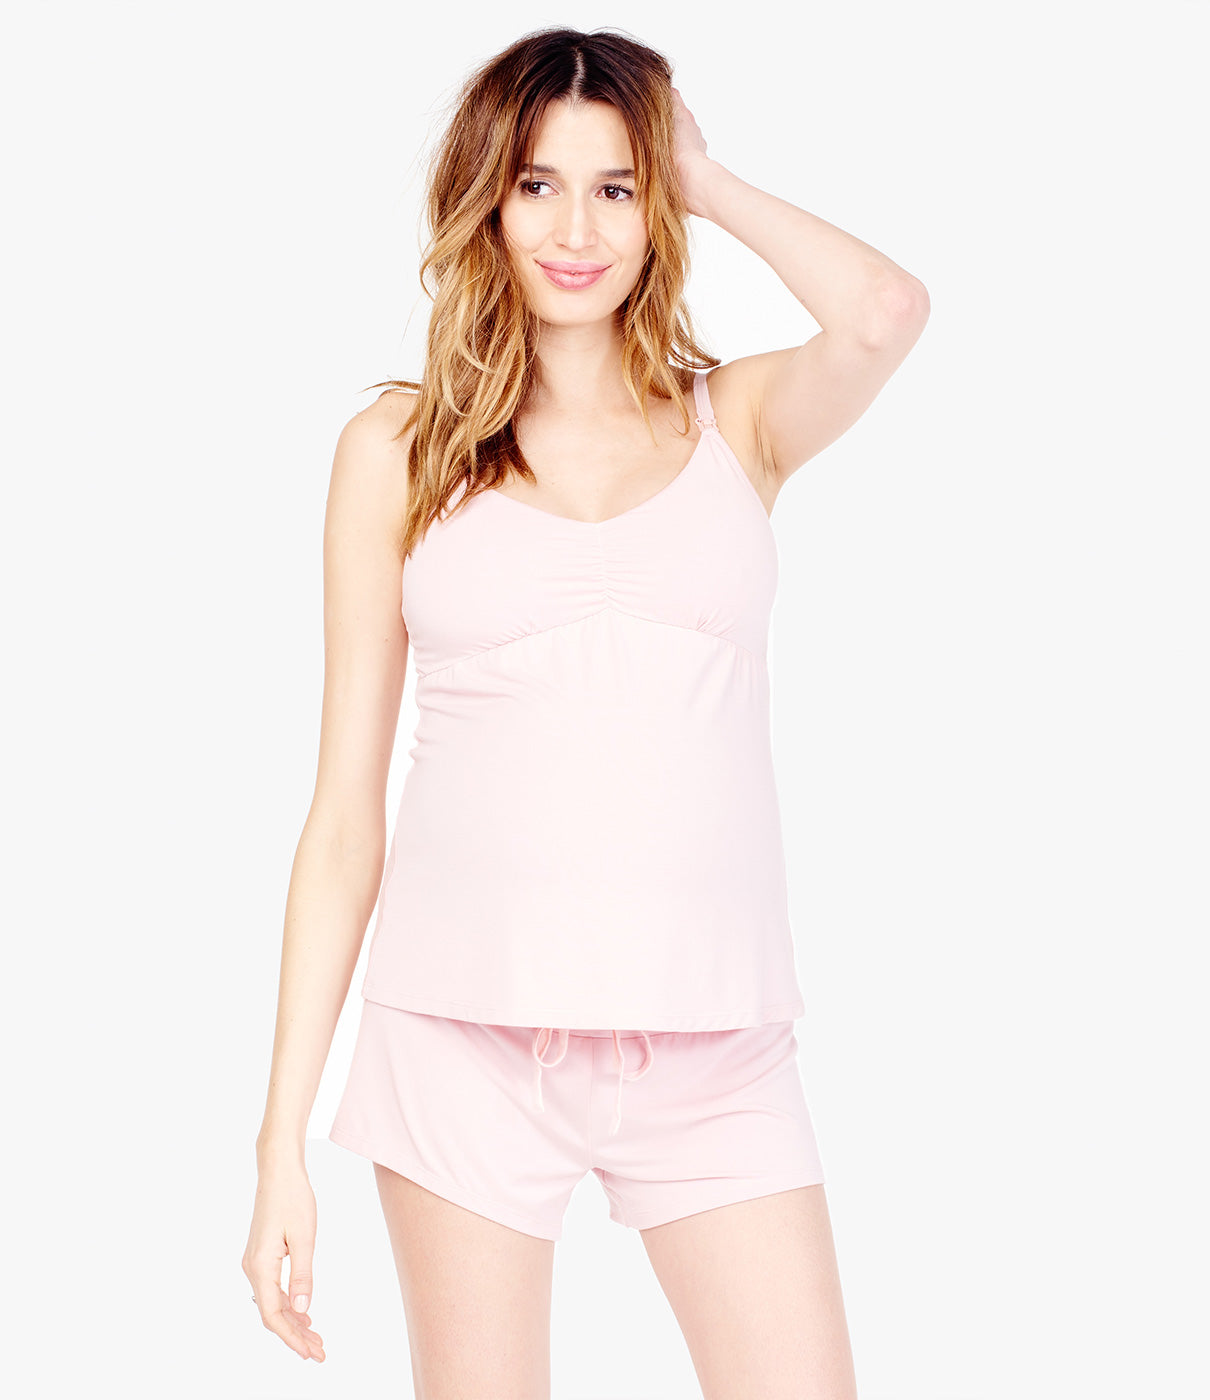 GROWS WITH YOUBoth the sleep short and camisole work during pregnancy and postpartum.